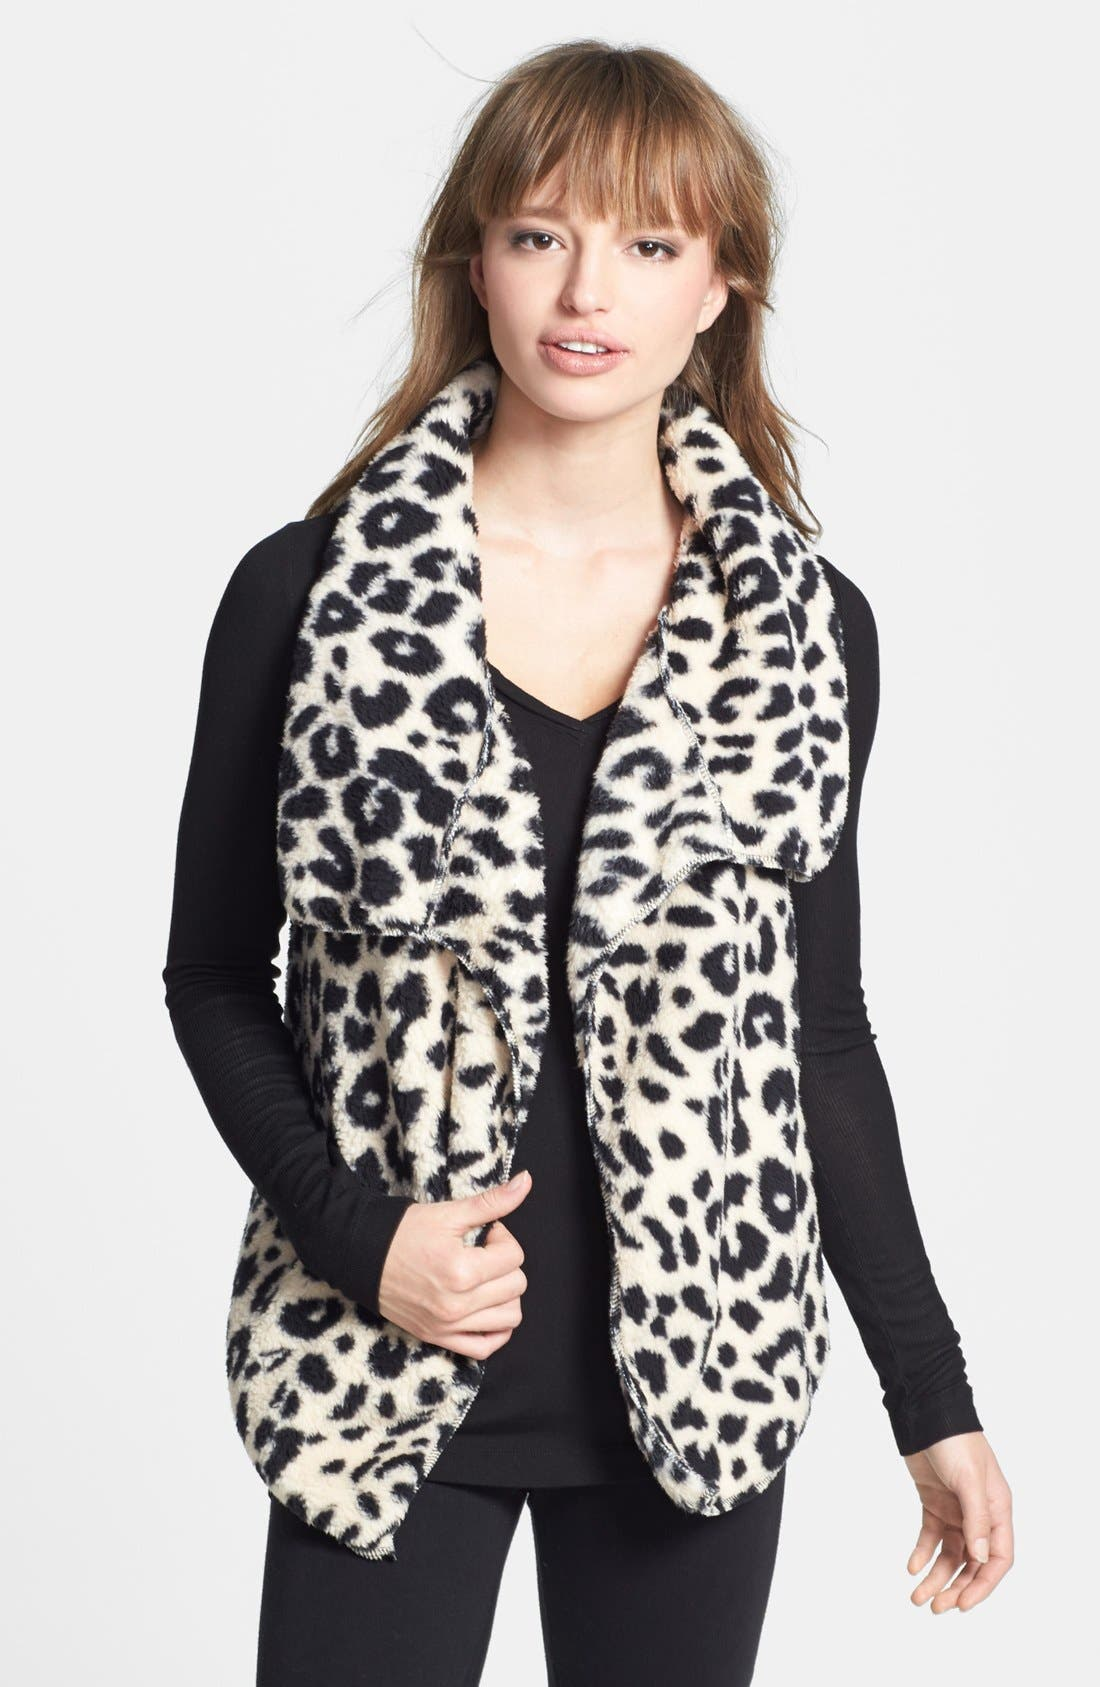 Alternate Image 1 Selected - PJ Salvage 'Cozy' Plush Leopard Vest